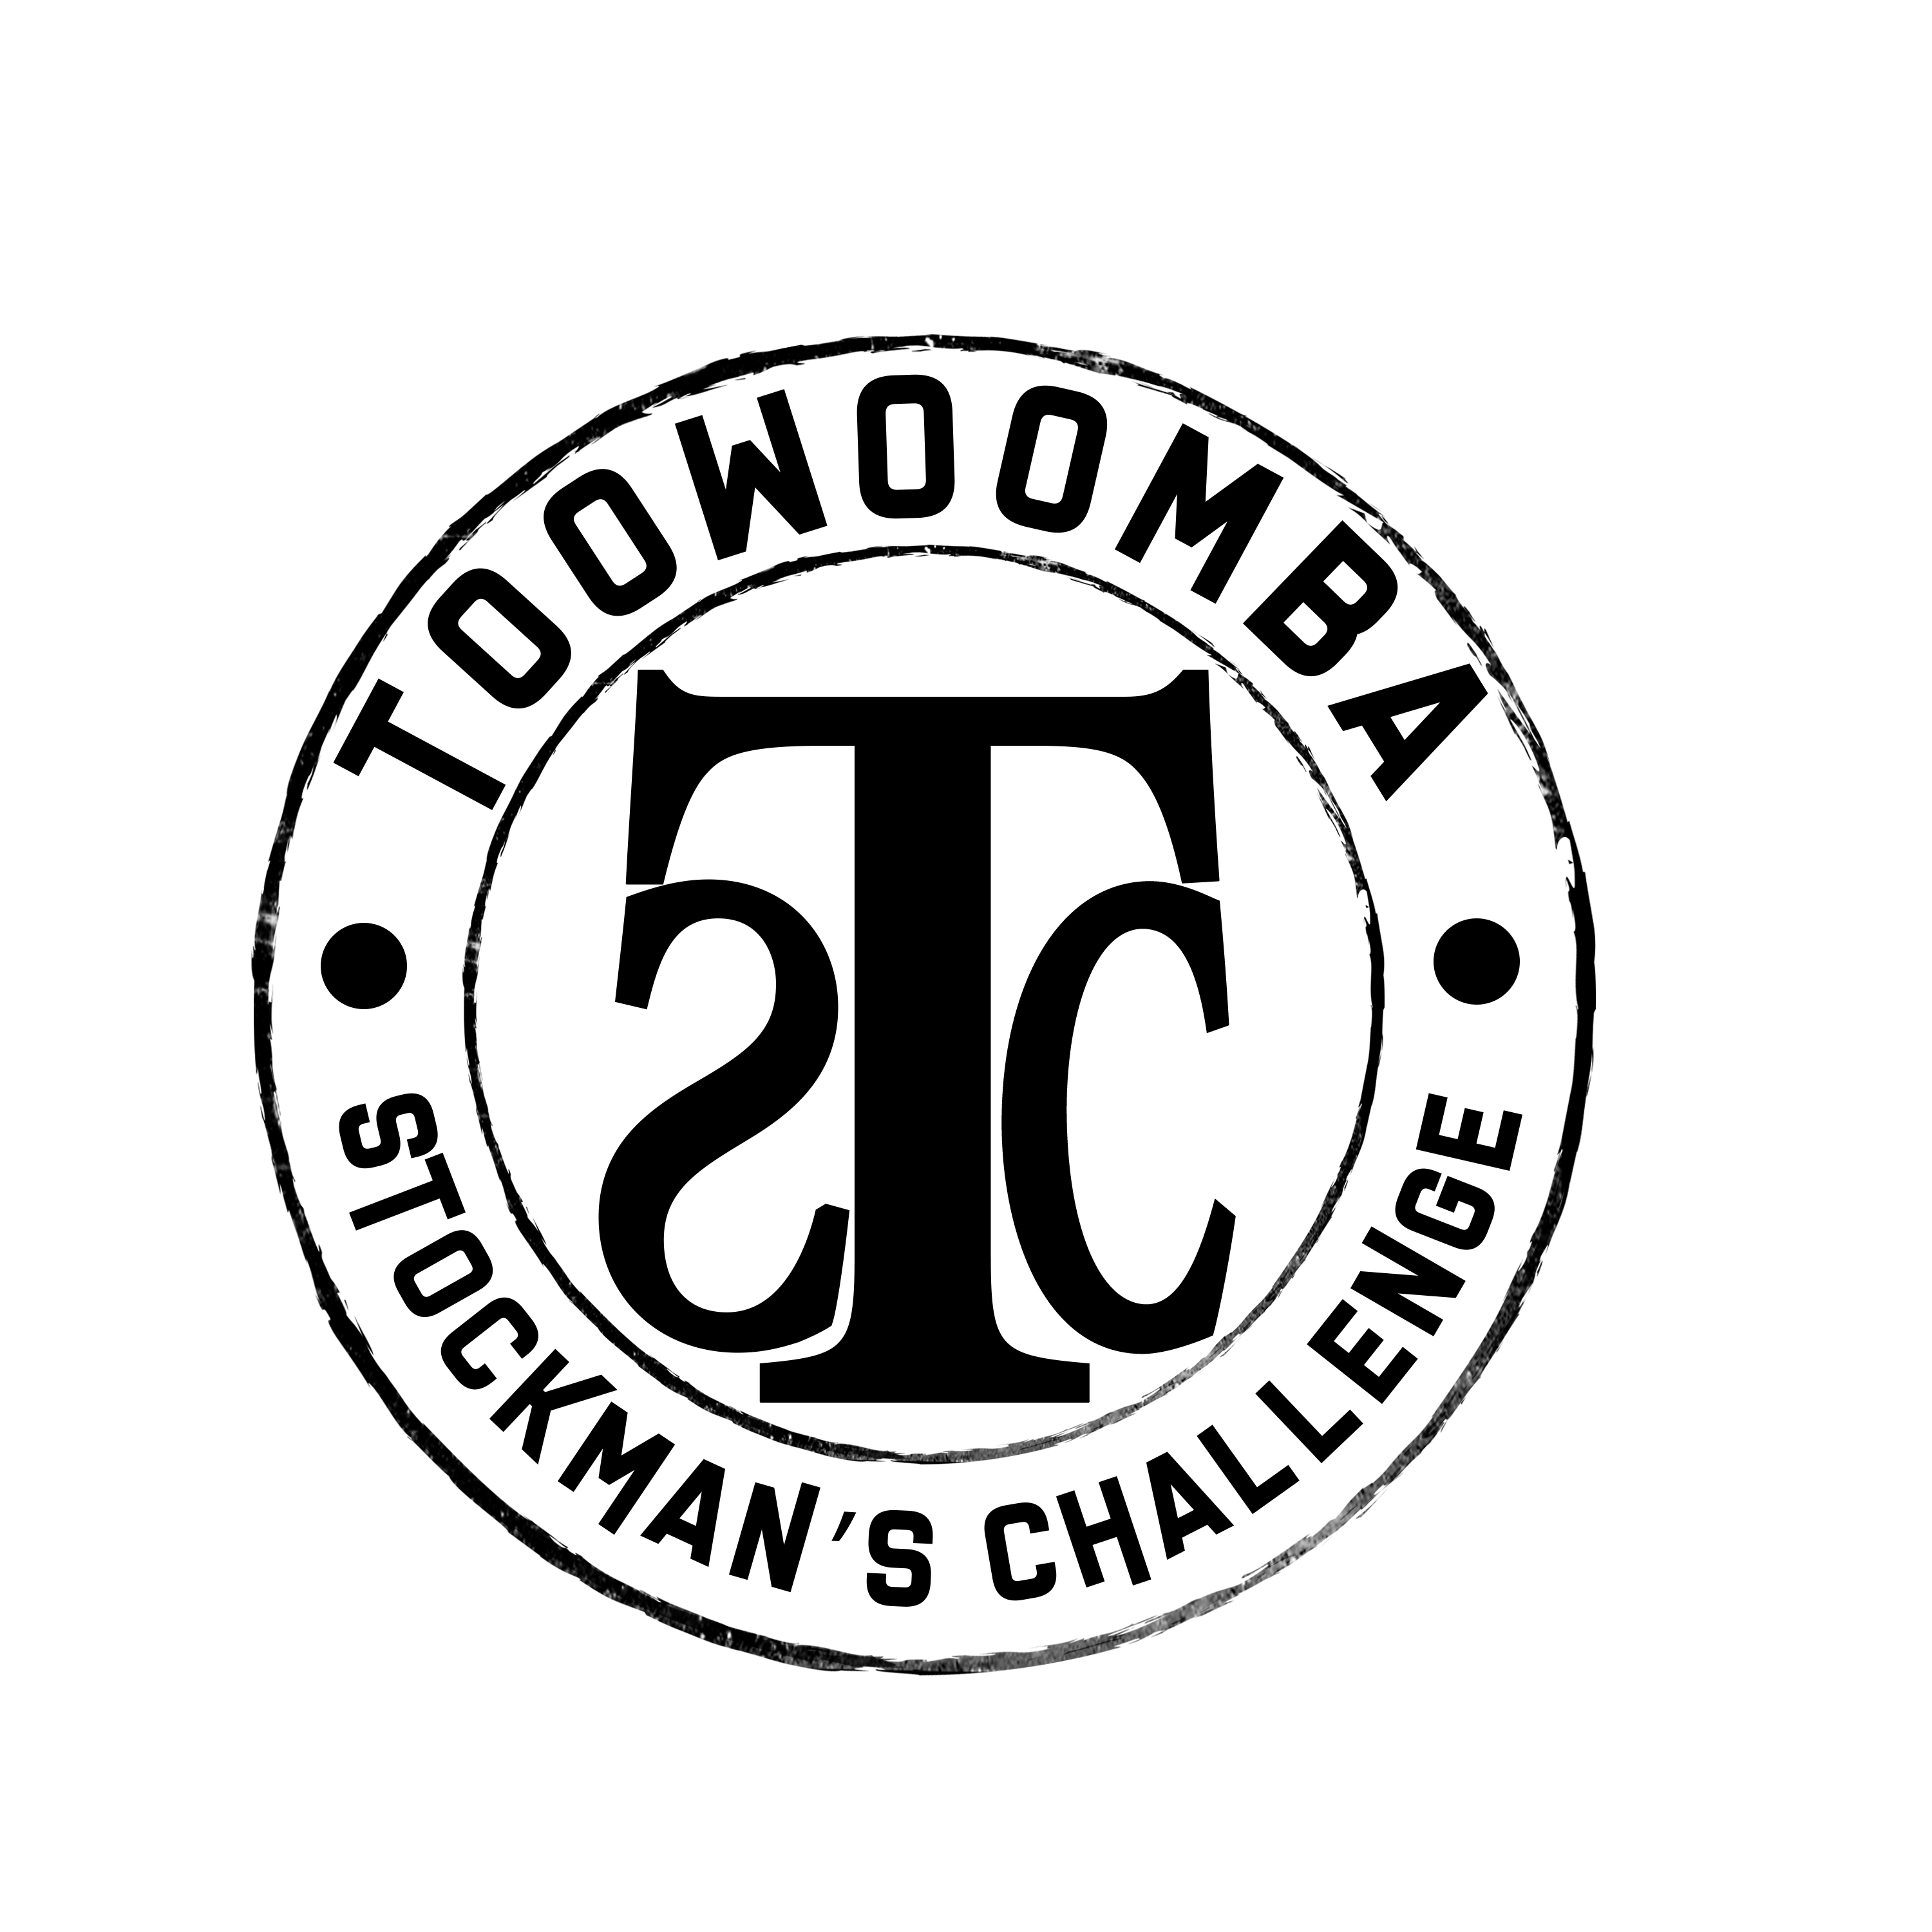 Toowoomba Stockman's Challenge & Campdraft